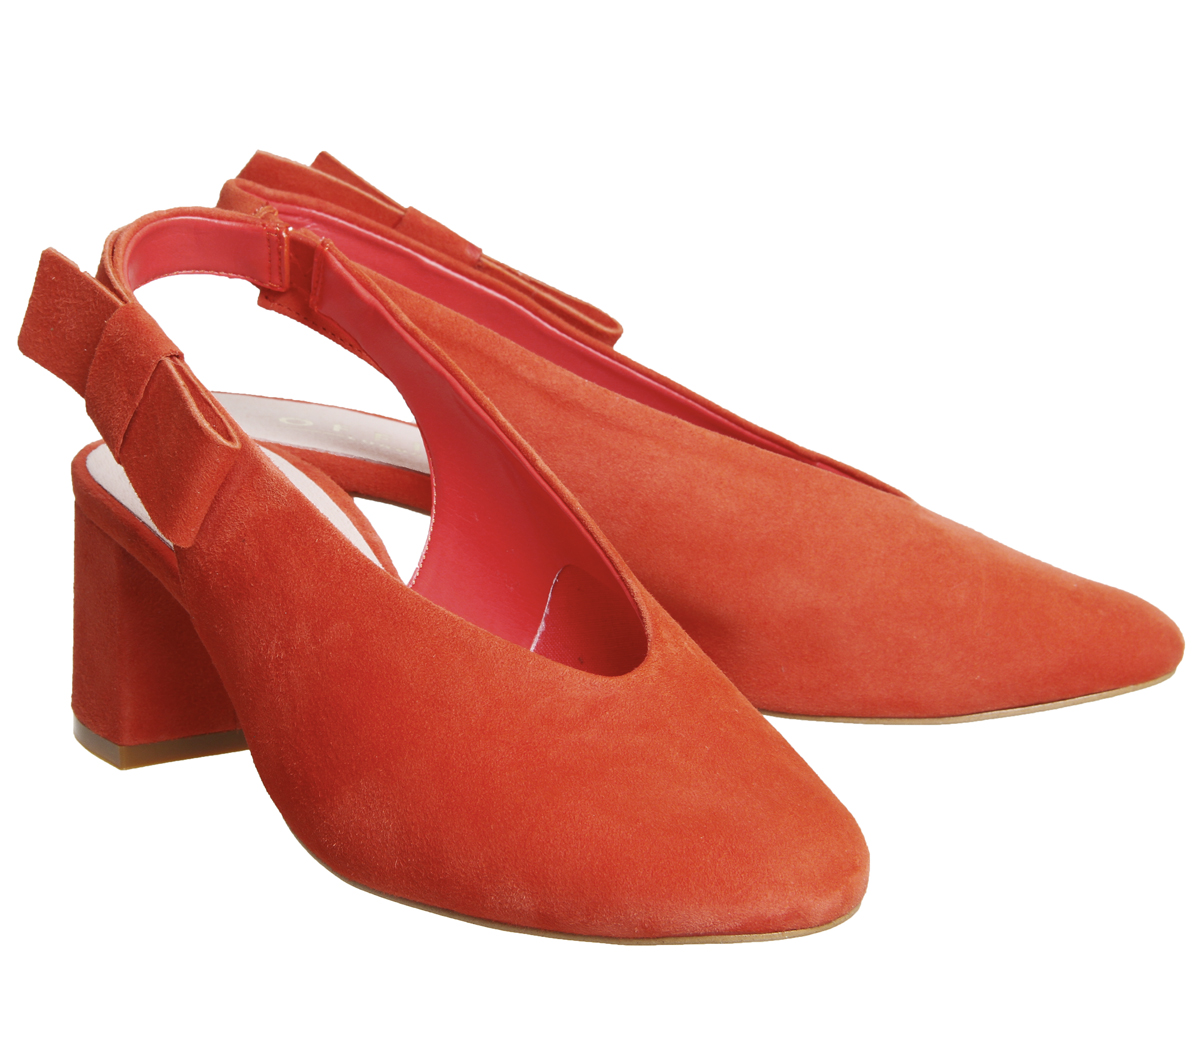 Womens-Office-Magical-Bow-Slingback-Heels-Red-Suede-Heels thumbnail 9